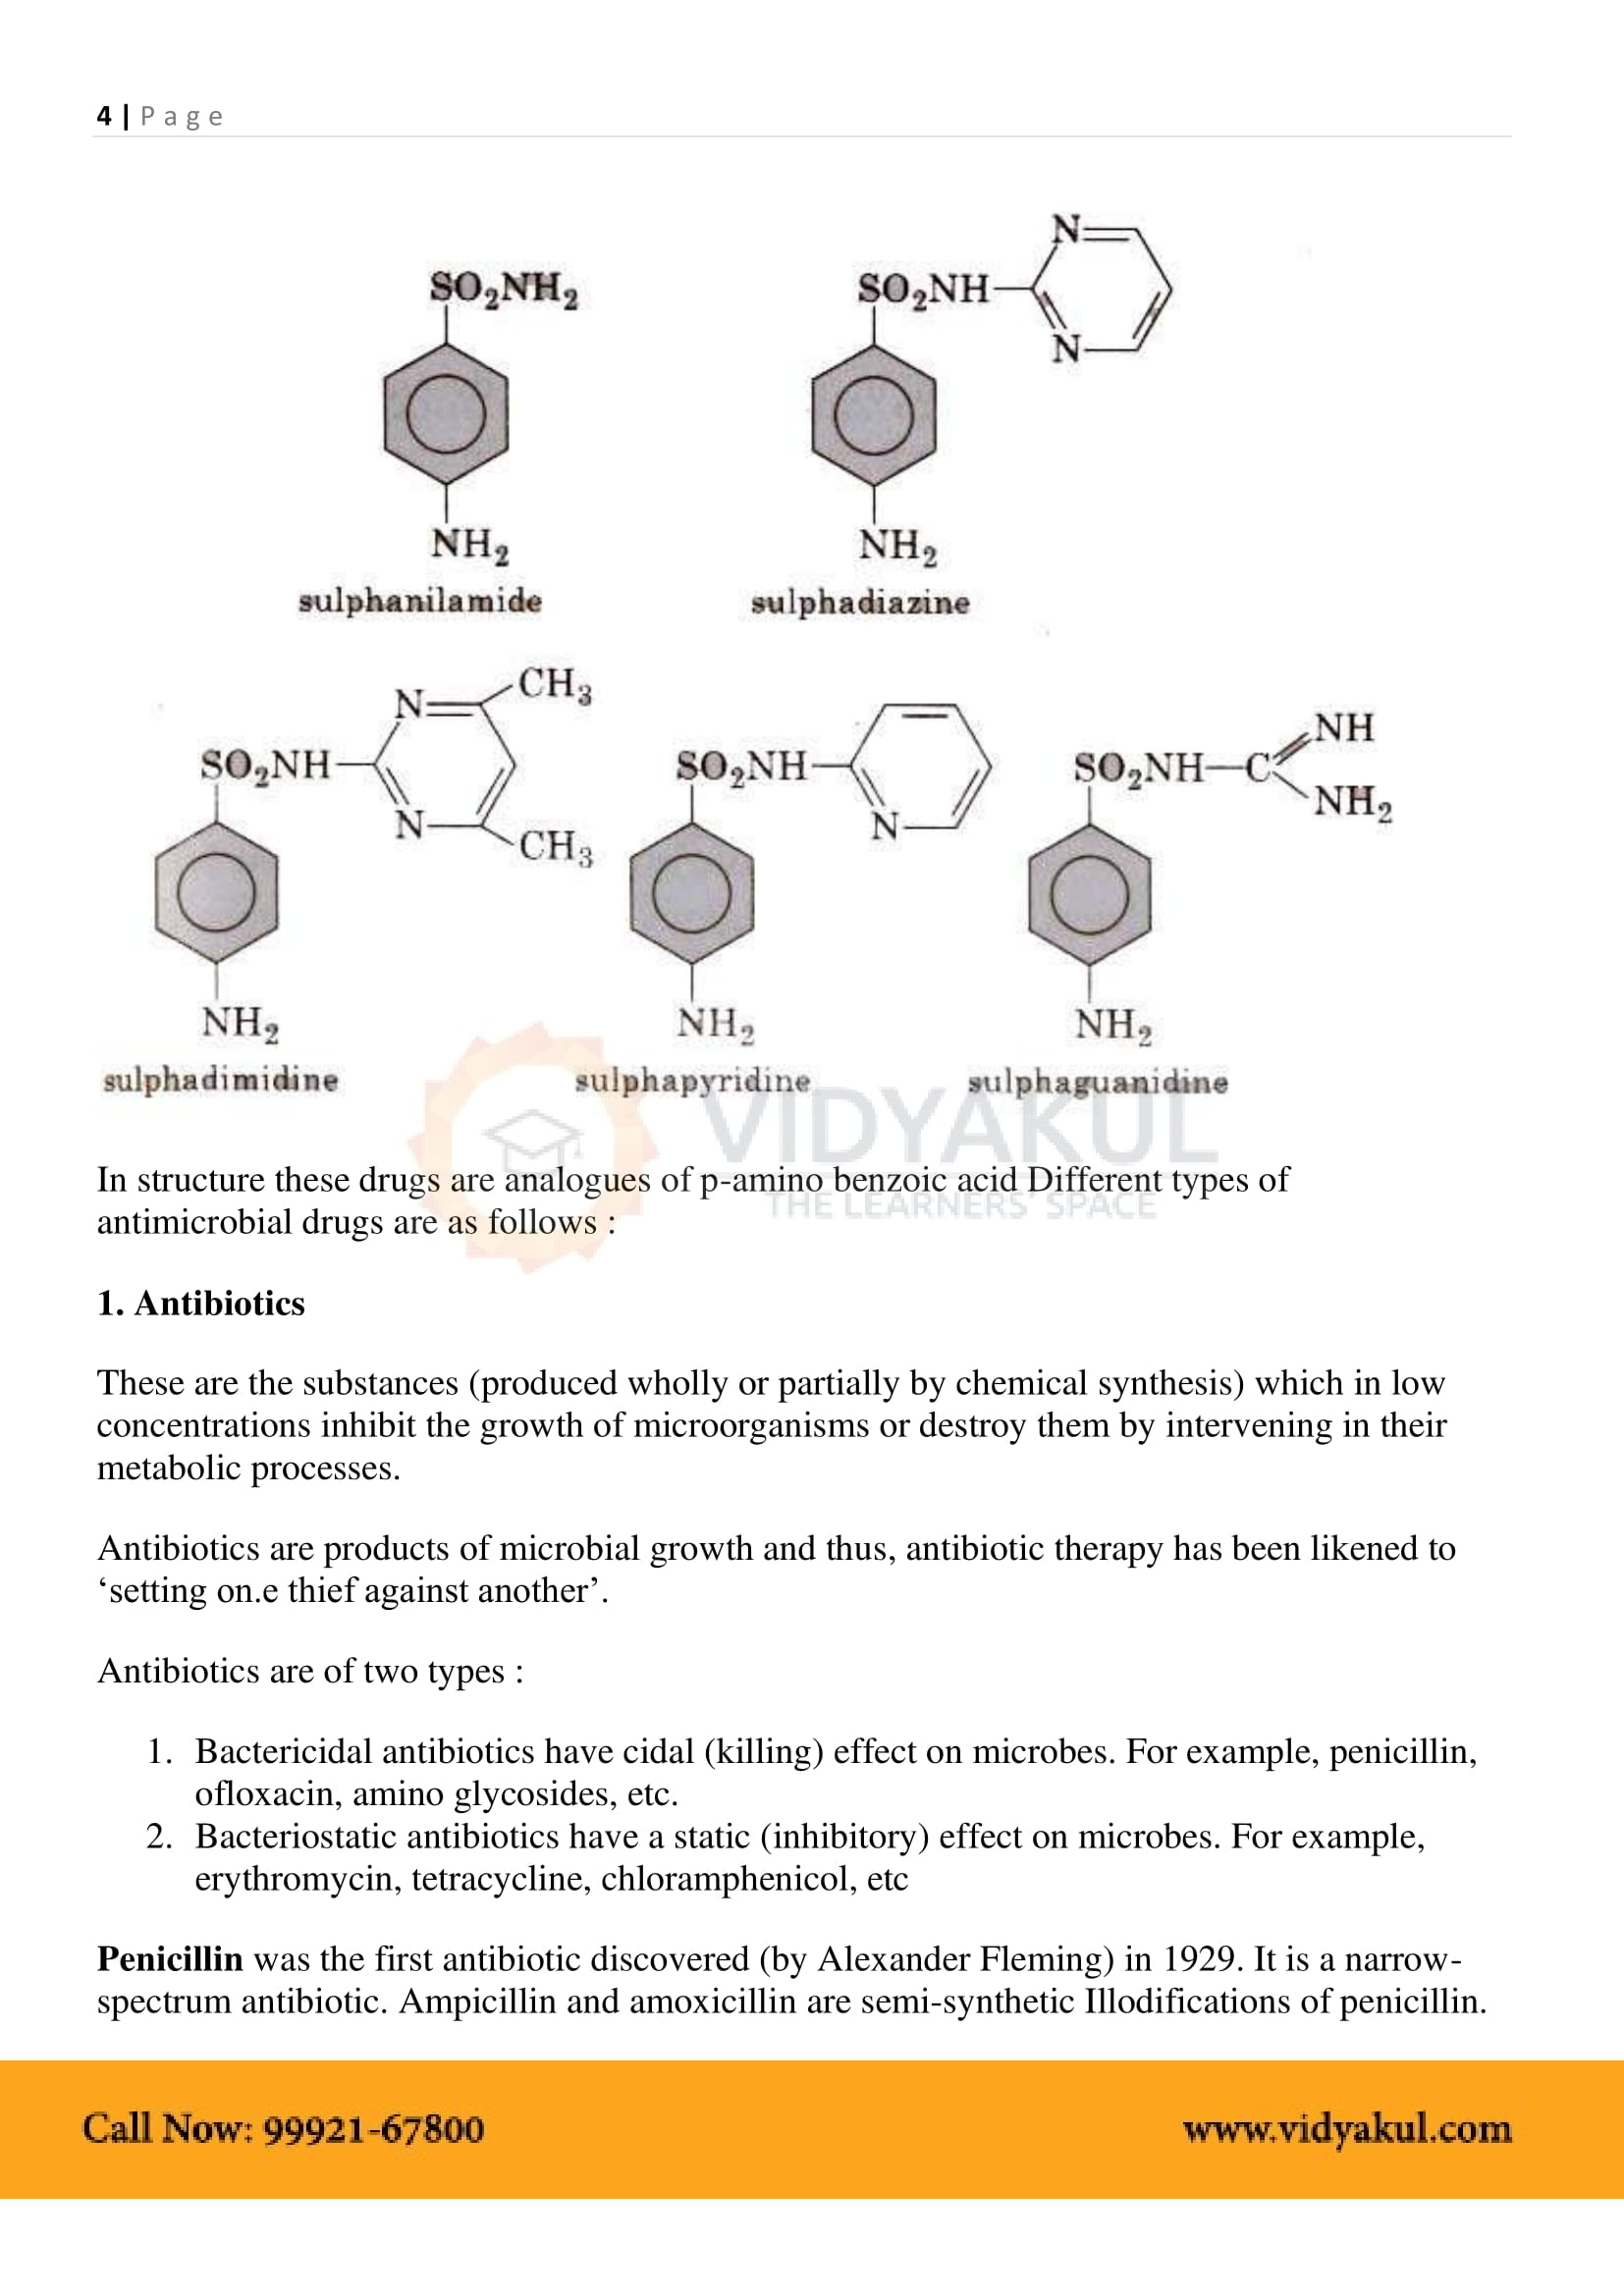 Chemistry in Everyday Life Class 12 Notes | Vidyakul